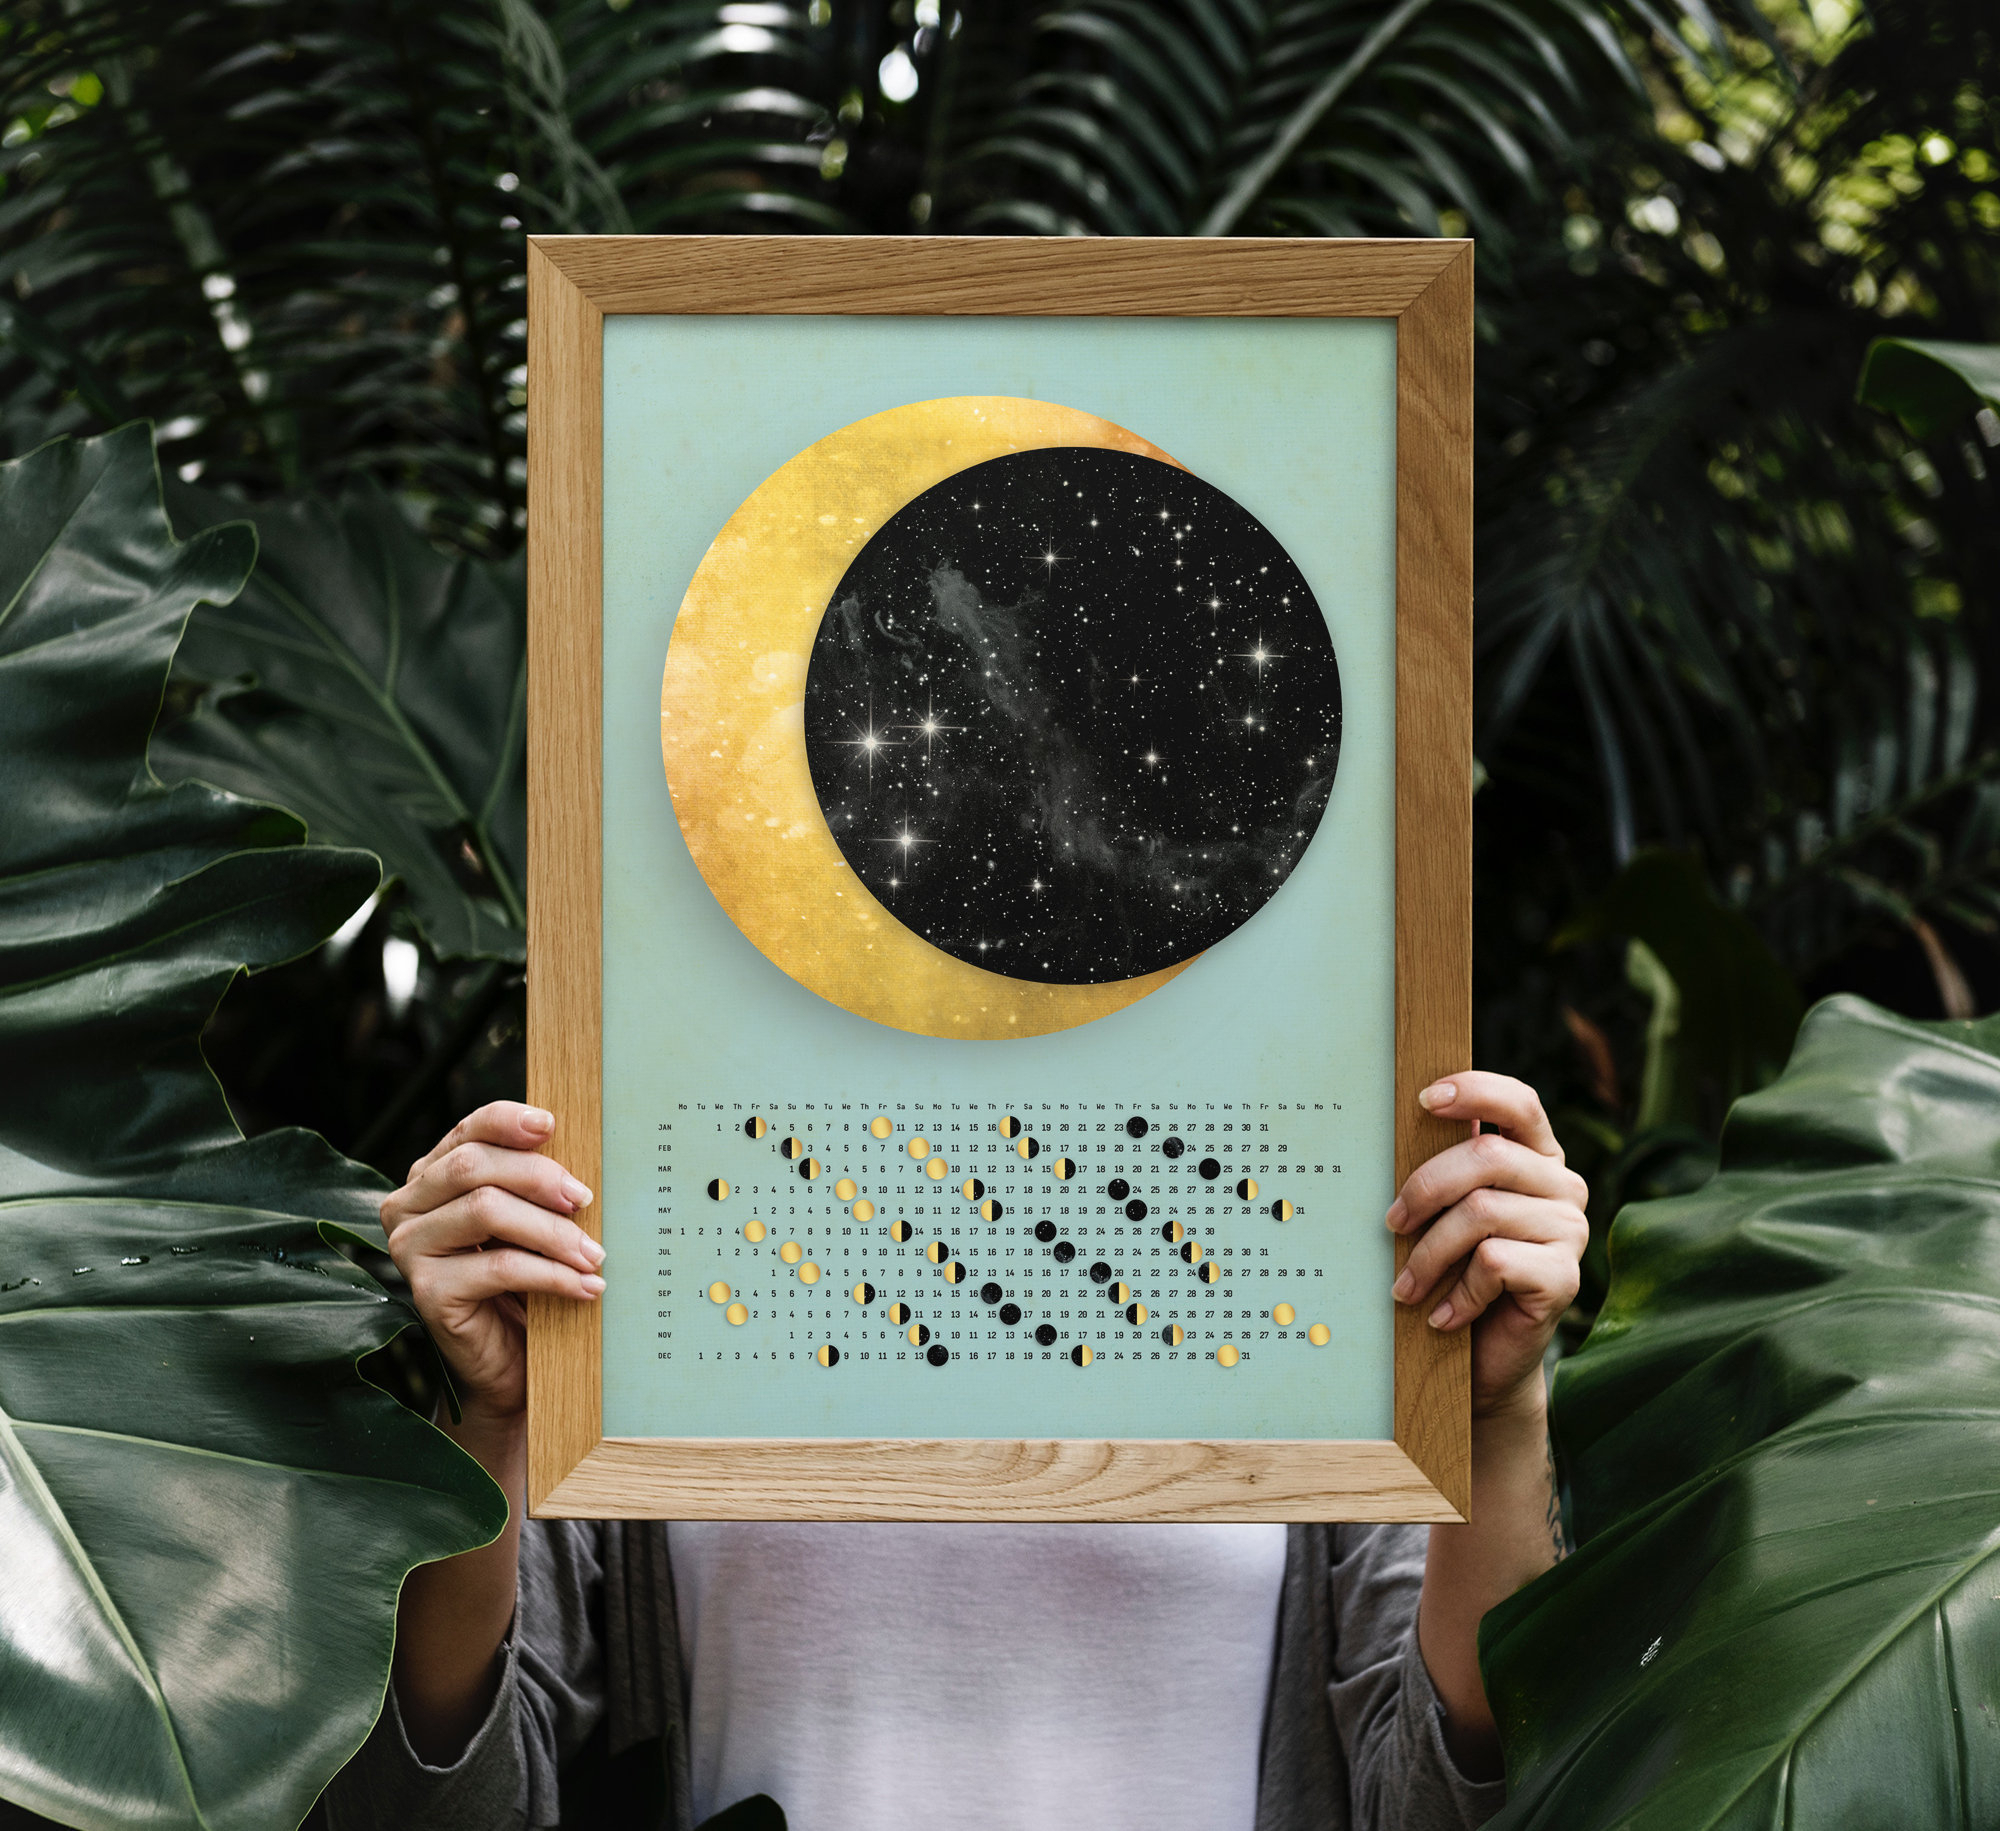 Customized Moon Calendar 2020. Moon Poster Calendar 2020. throughout Moon Calendar Puerto Rico